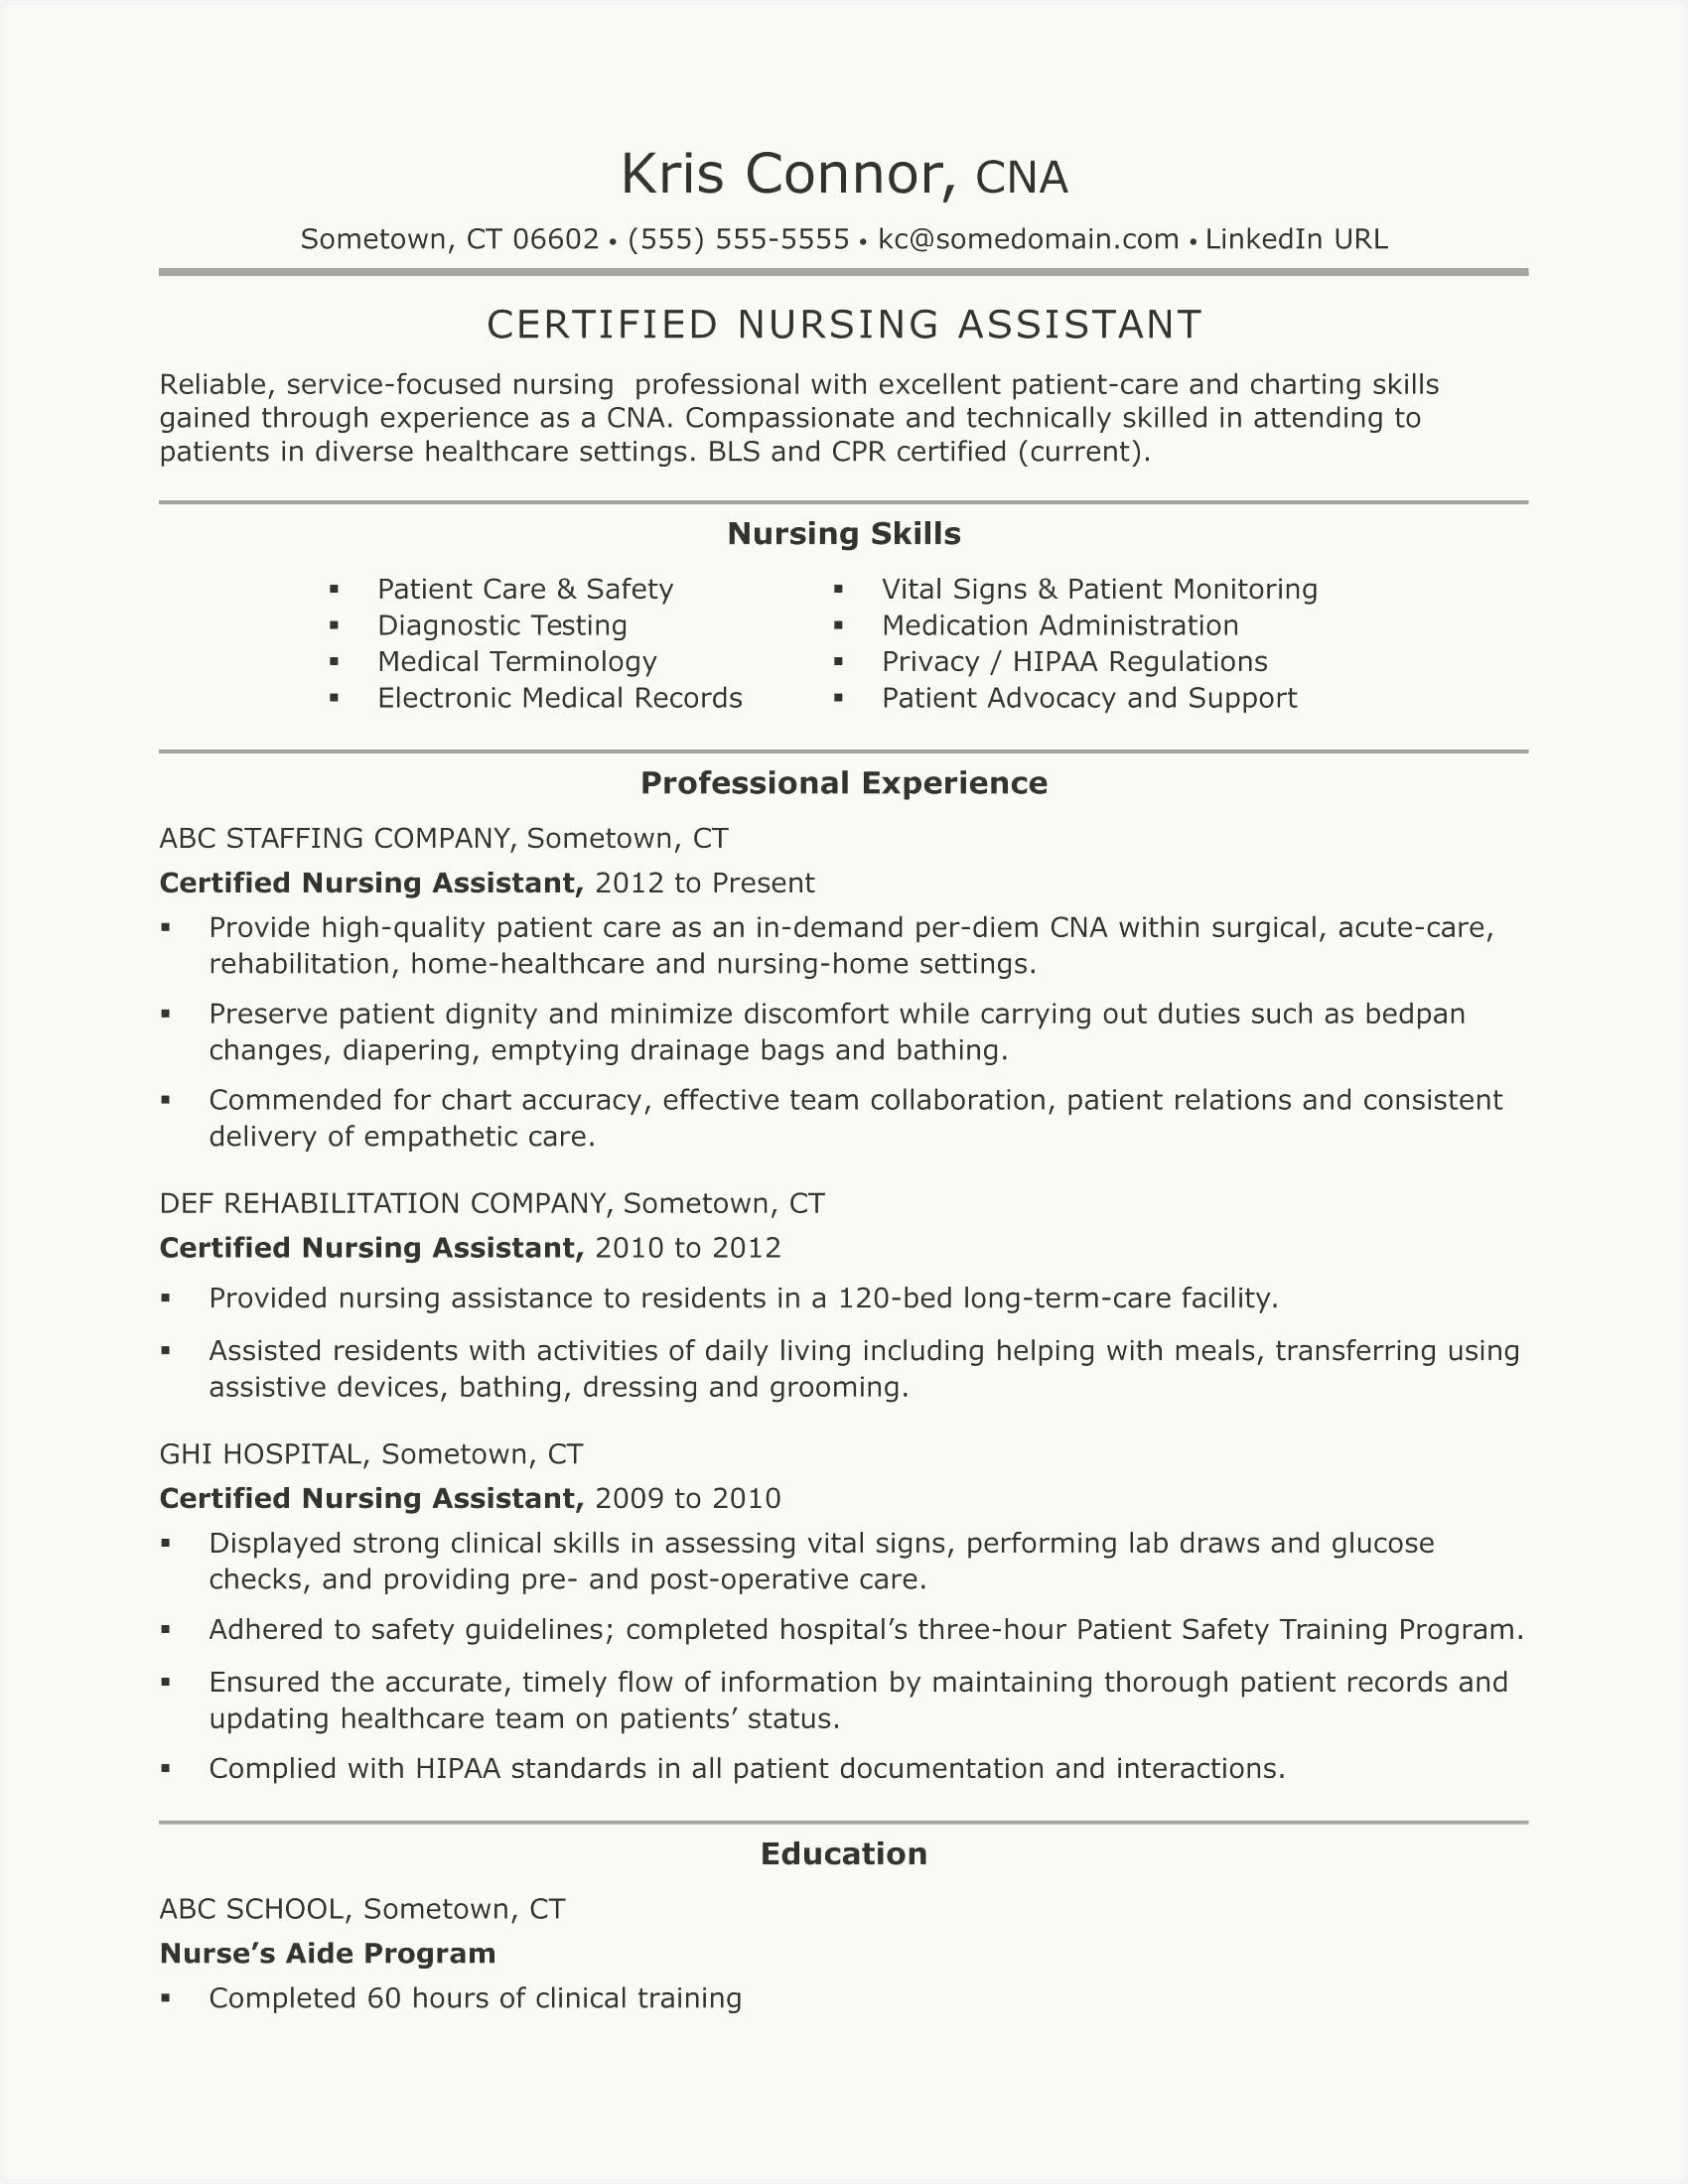 52 Inspirational Nursing Assistant Resume Sample Pics In 2020